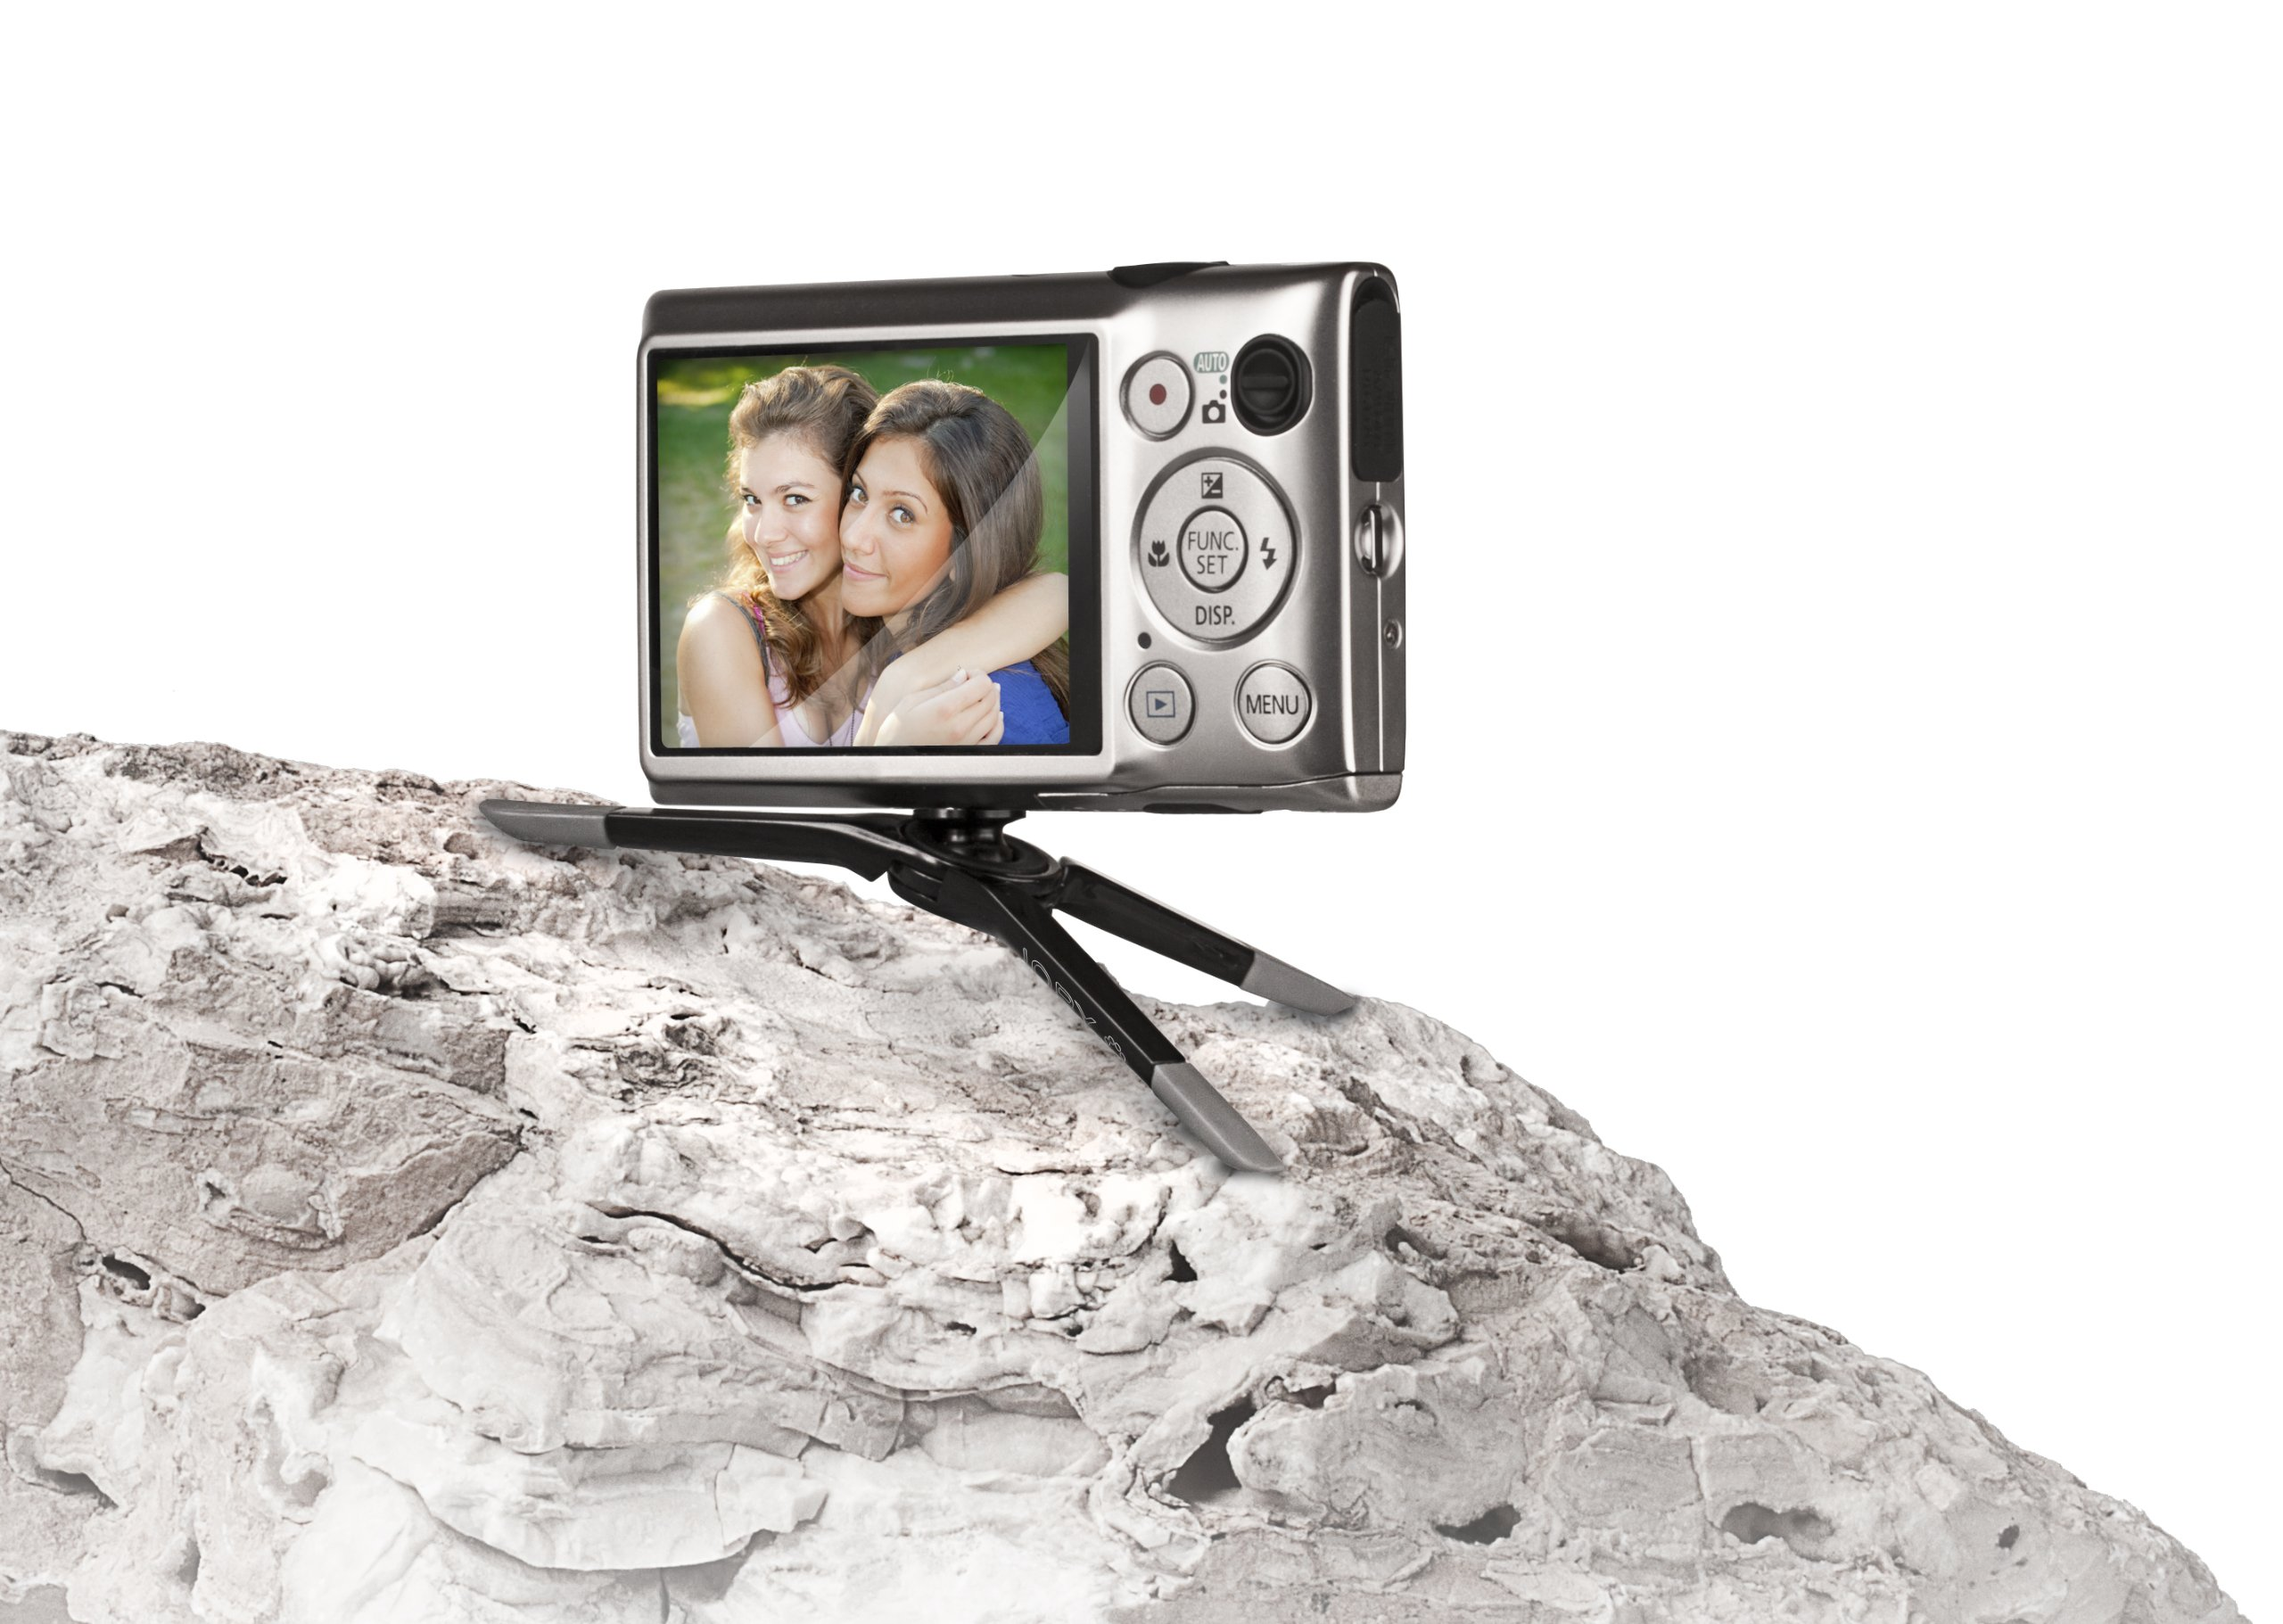 JOBY Micro Tripod for Point & Shoot Cameras - Ultra Portable Tripod That Fits In Your Pocket by Joby (Image #4)